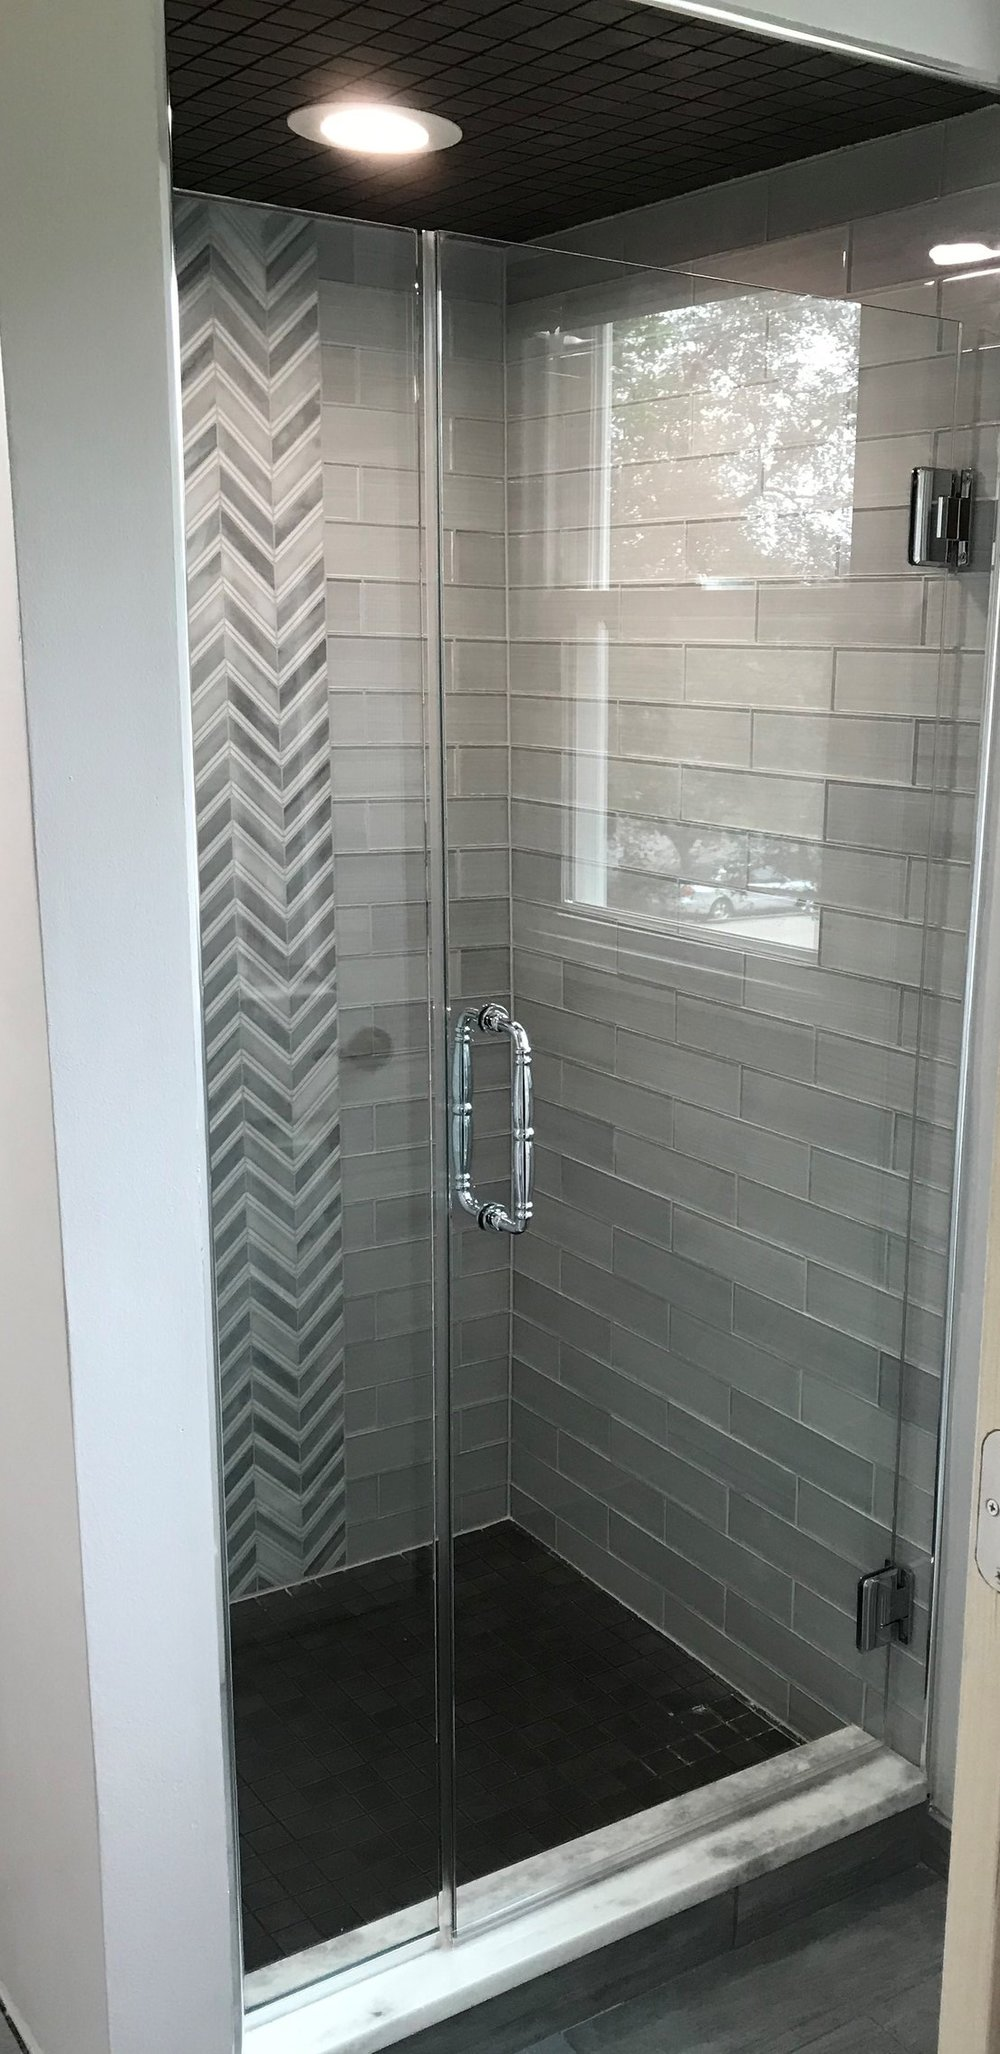 Frameless Shower 7.25.2018.jpg